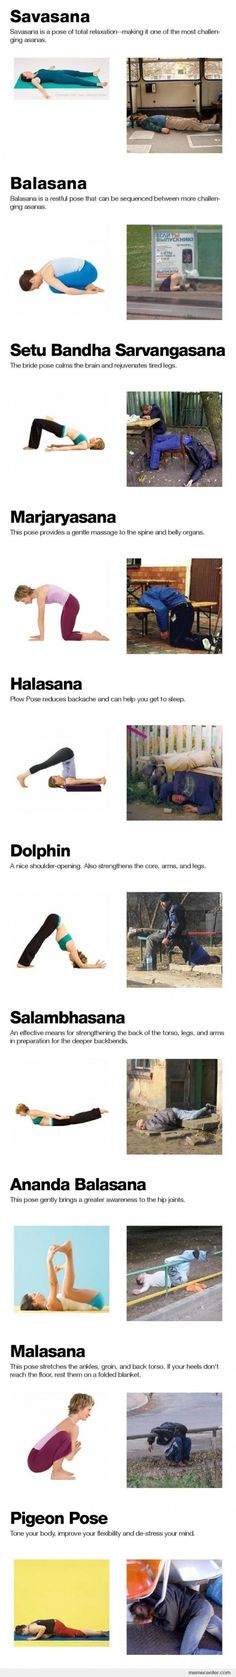 And then there is drunk yoga...